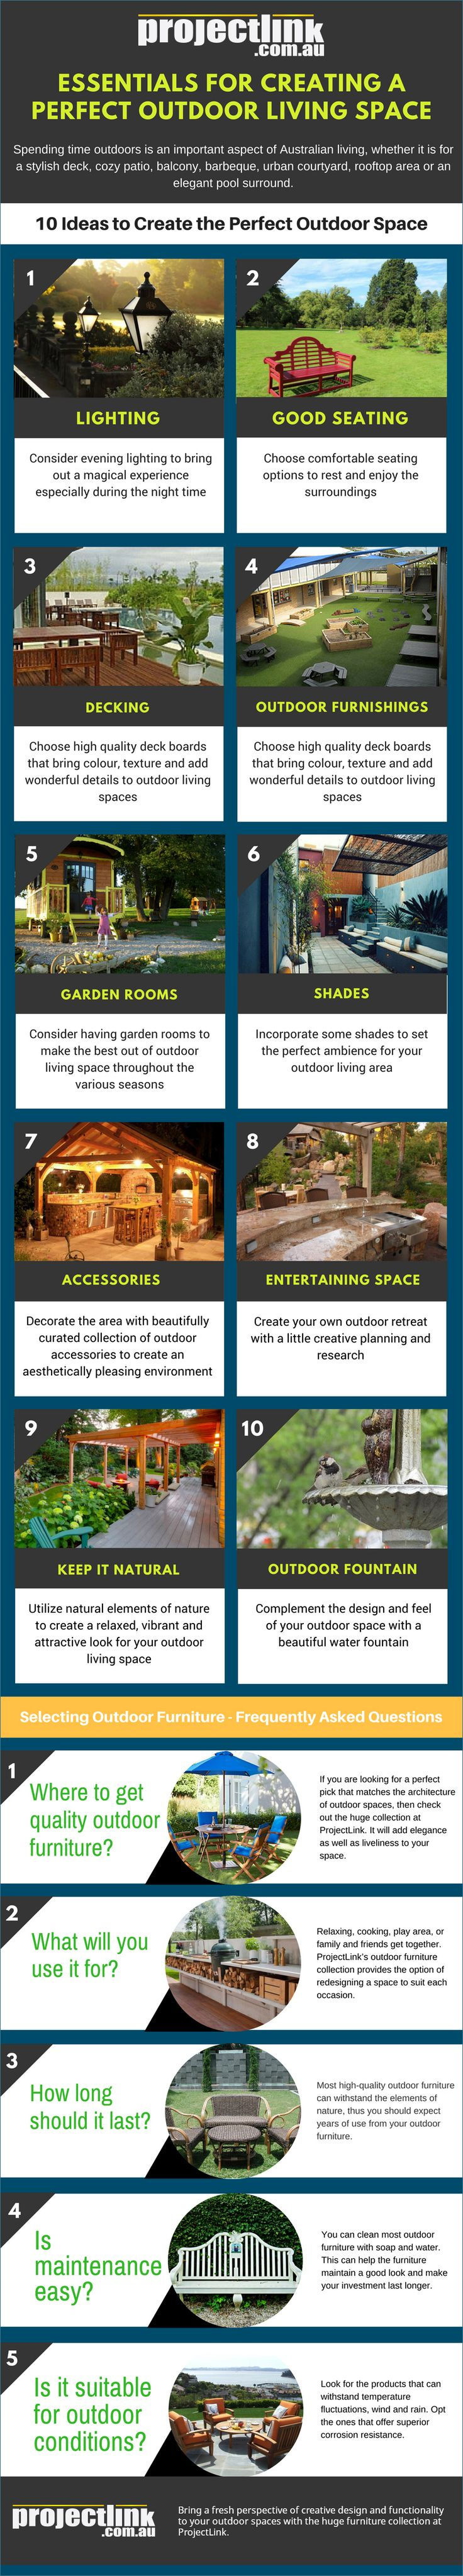 With the change of seasons comes the opportunity to spend more time outside with family and friends. If you are looking for ideas to create the perfect fall friendly outdoor living space, then you have come to the right place. The ideas in this infographic will help you spruce up your outdoor living area and create your own cozy retreat for fall.